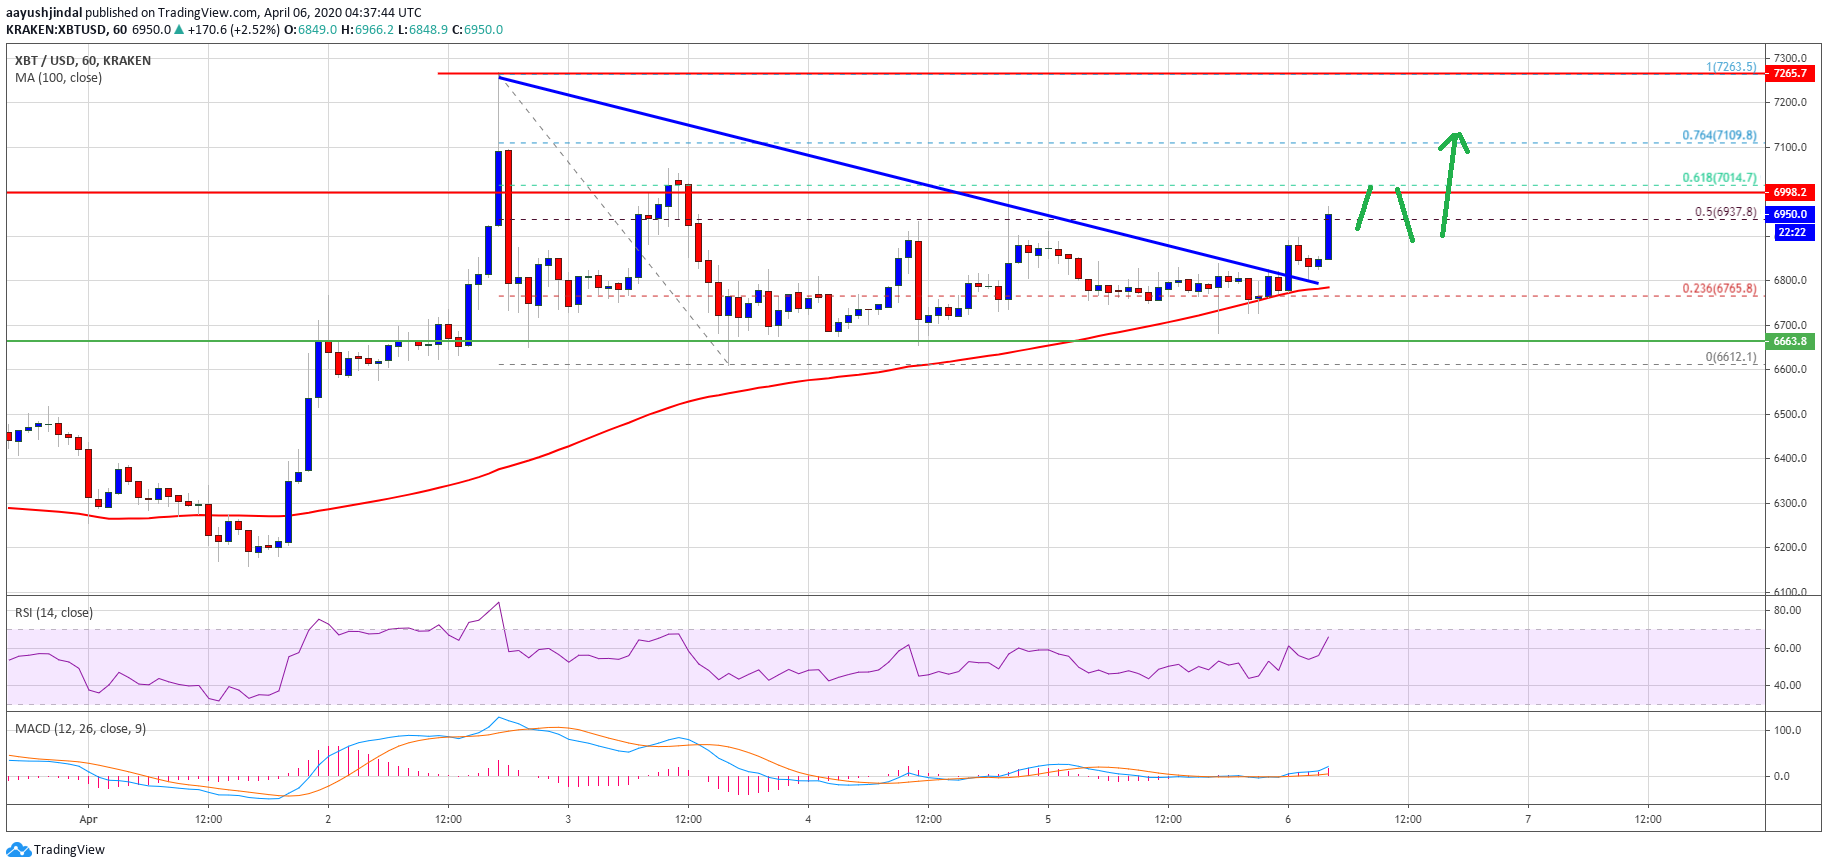 Bitcoin Hesitates But These Indicators Suggest Break Above $7K Is Looming